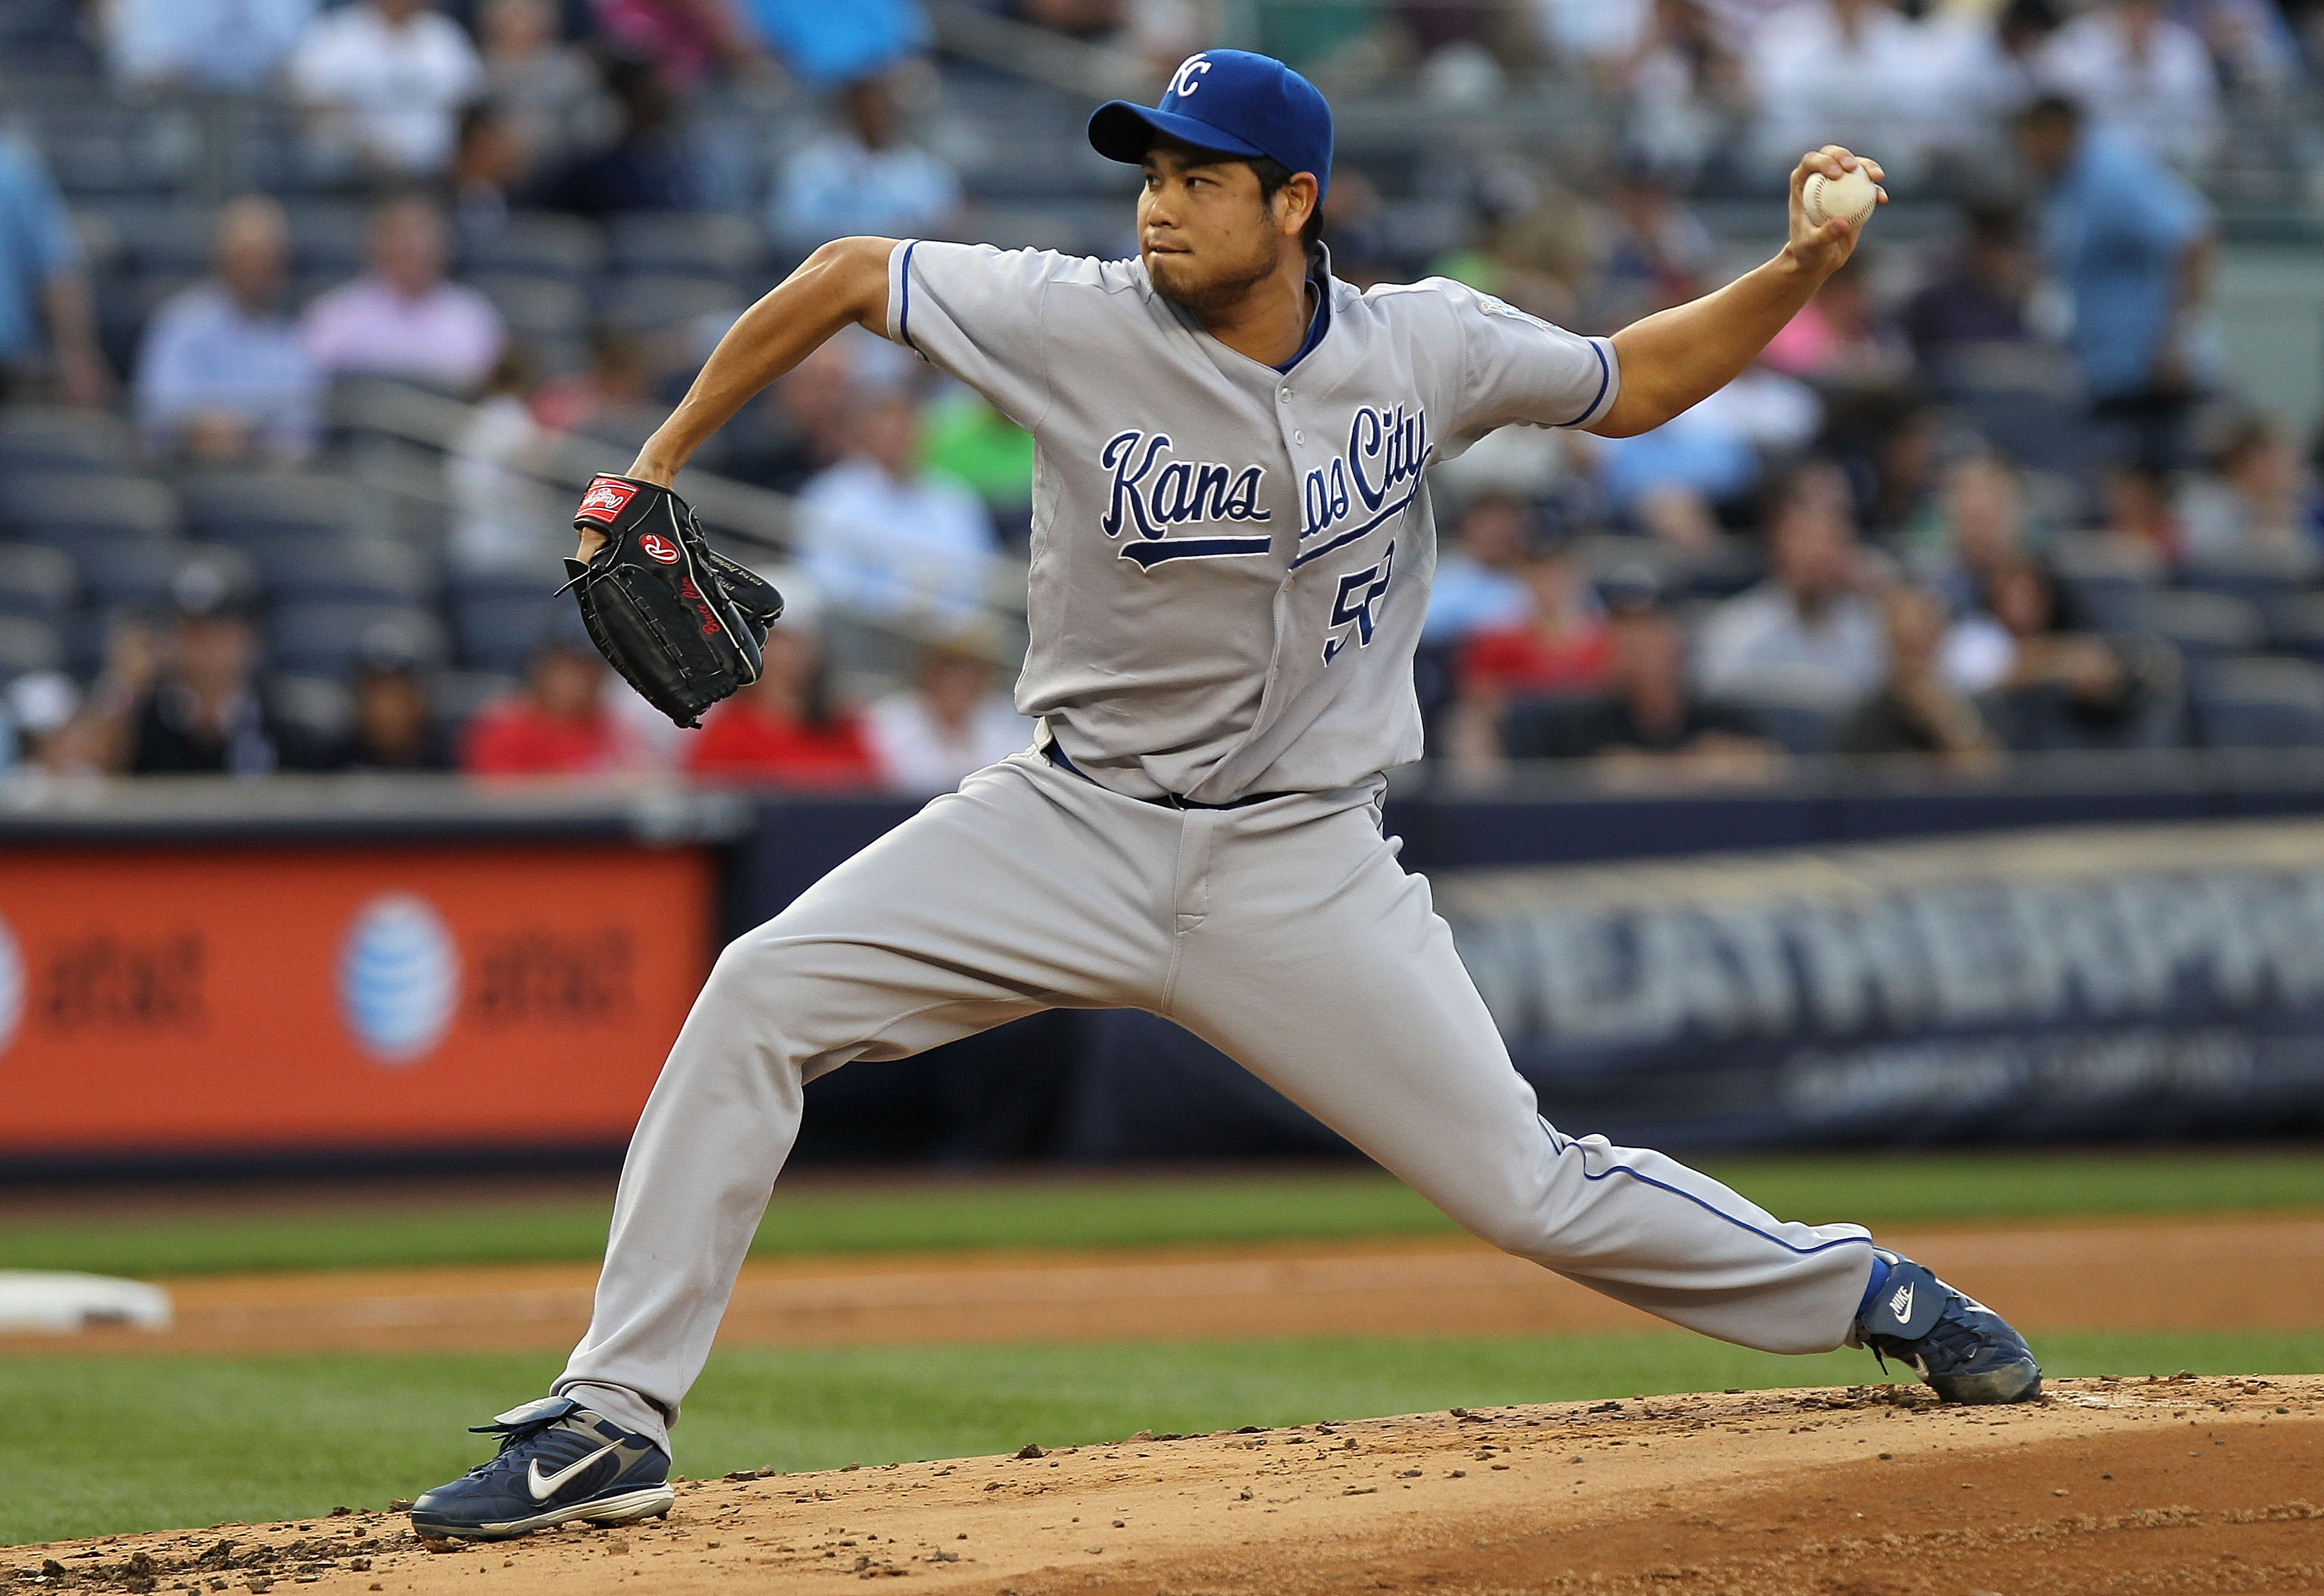 NEW YORK - JULY 22:  Bruce Chen #52 of the Kansas City Royals pitches against the New York Yankees at Yankee Stadium on July 22, 2010 in the Bronx borough of New York City.  (Photo by Nick Laham/Getty Images)